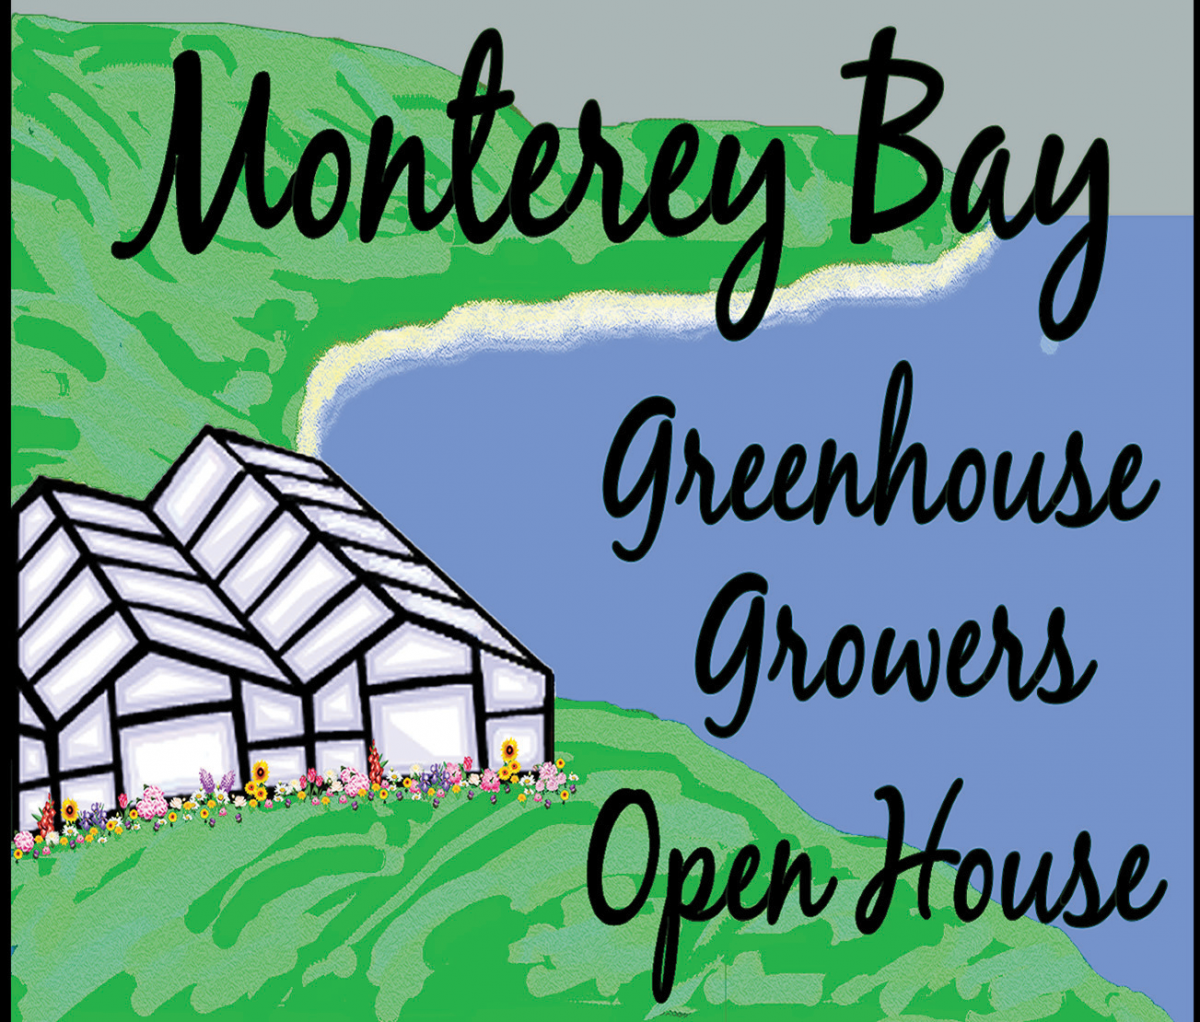 9th Annual Monterey Bay Greenhouse Growers Open House